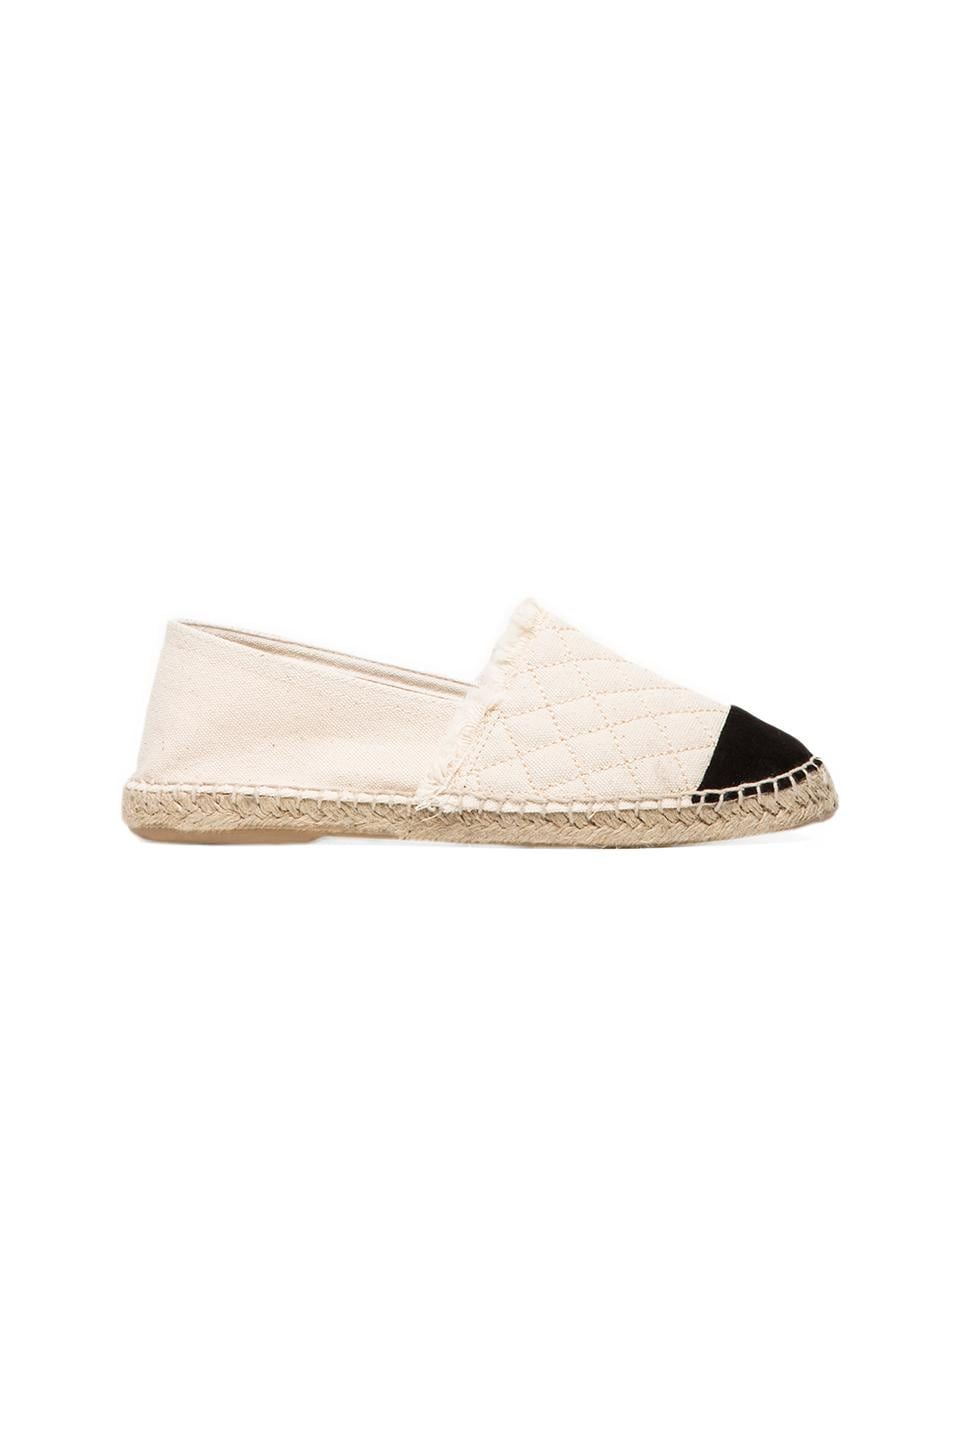 Jeffrey Campbell Lona Loafer in Ivory